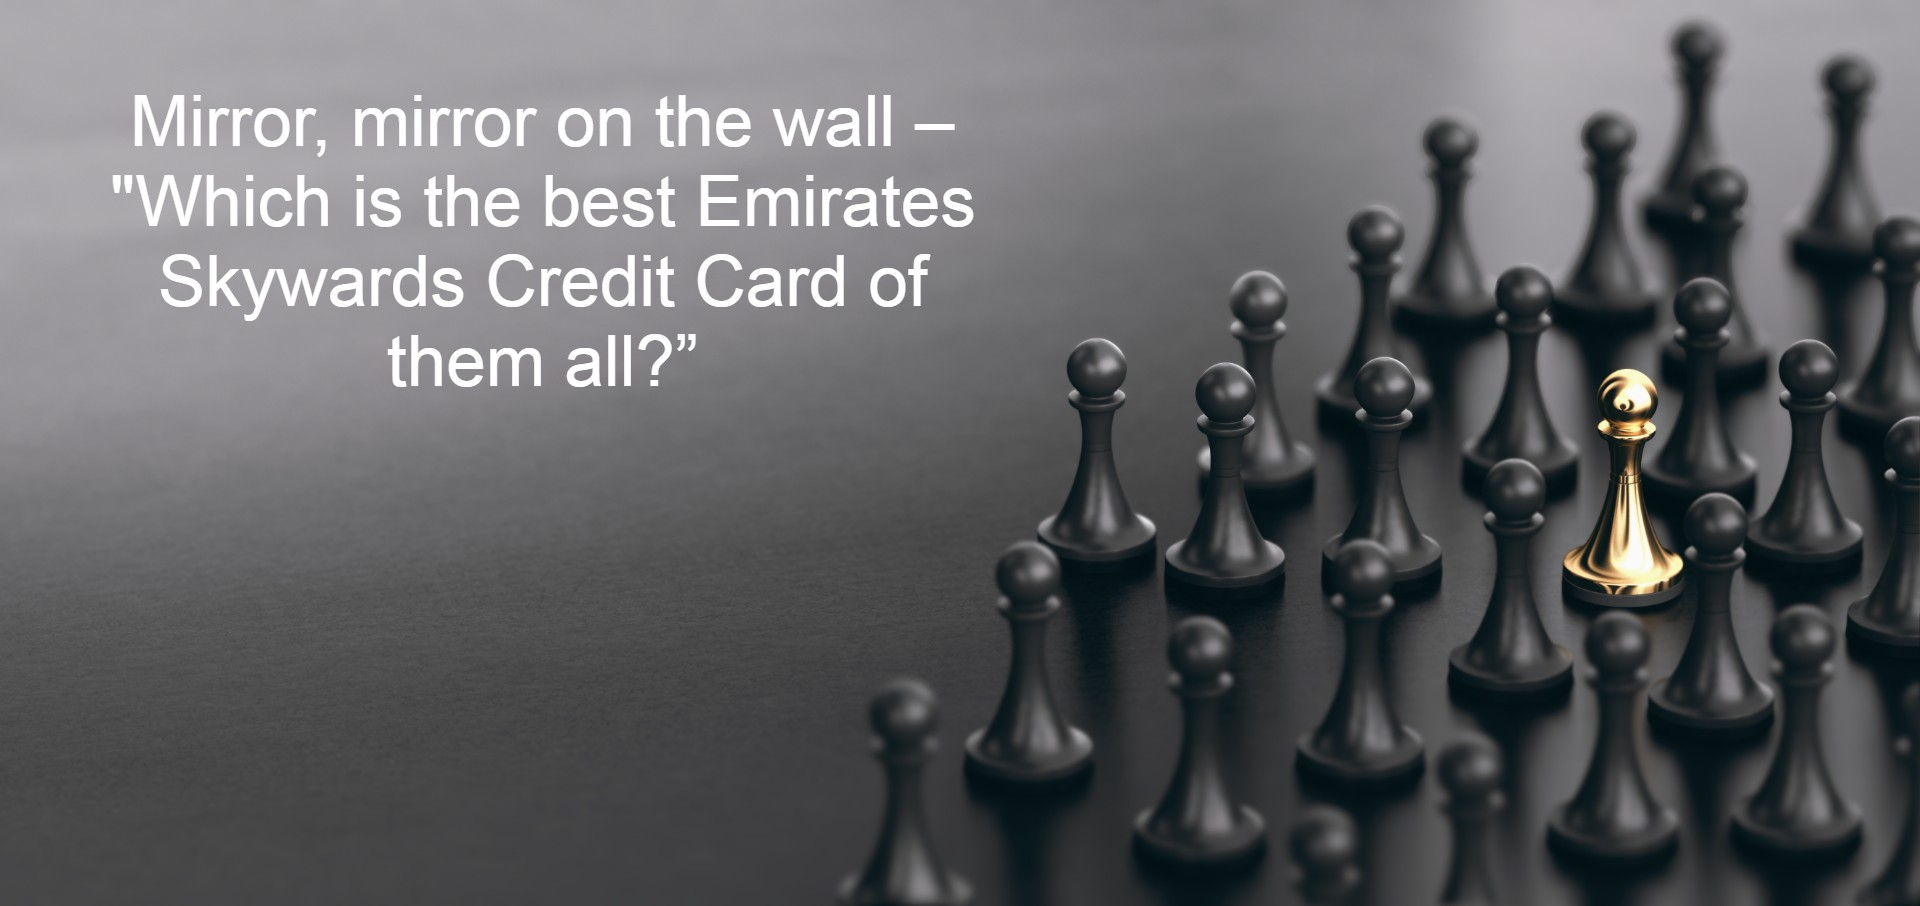 Emirates Skywards Credit Cards